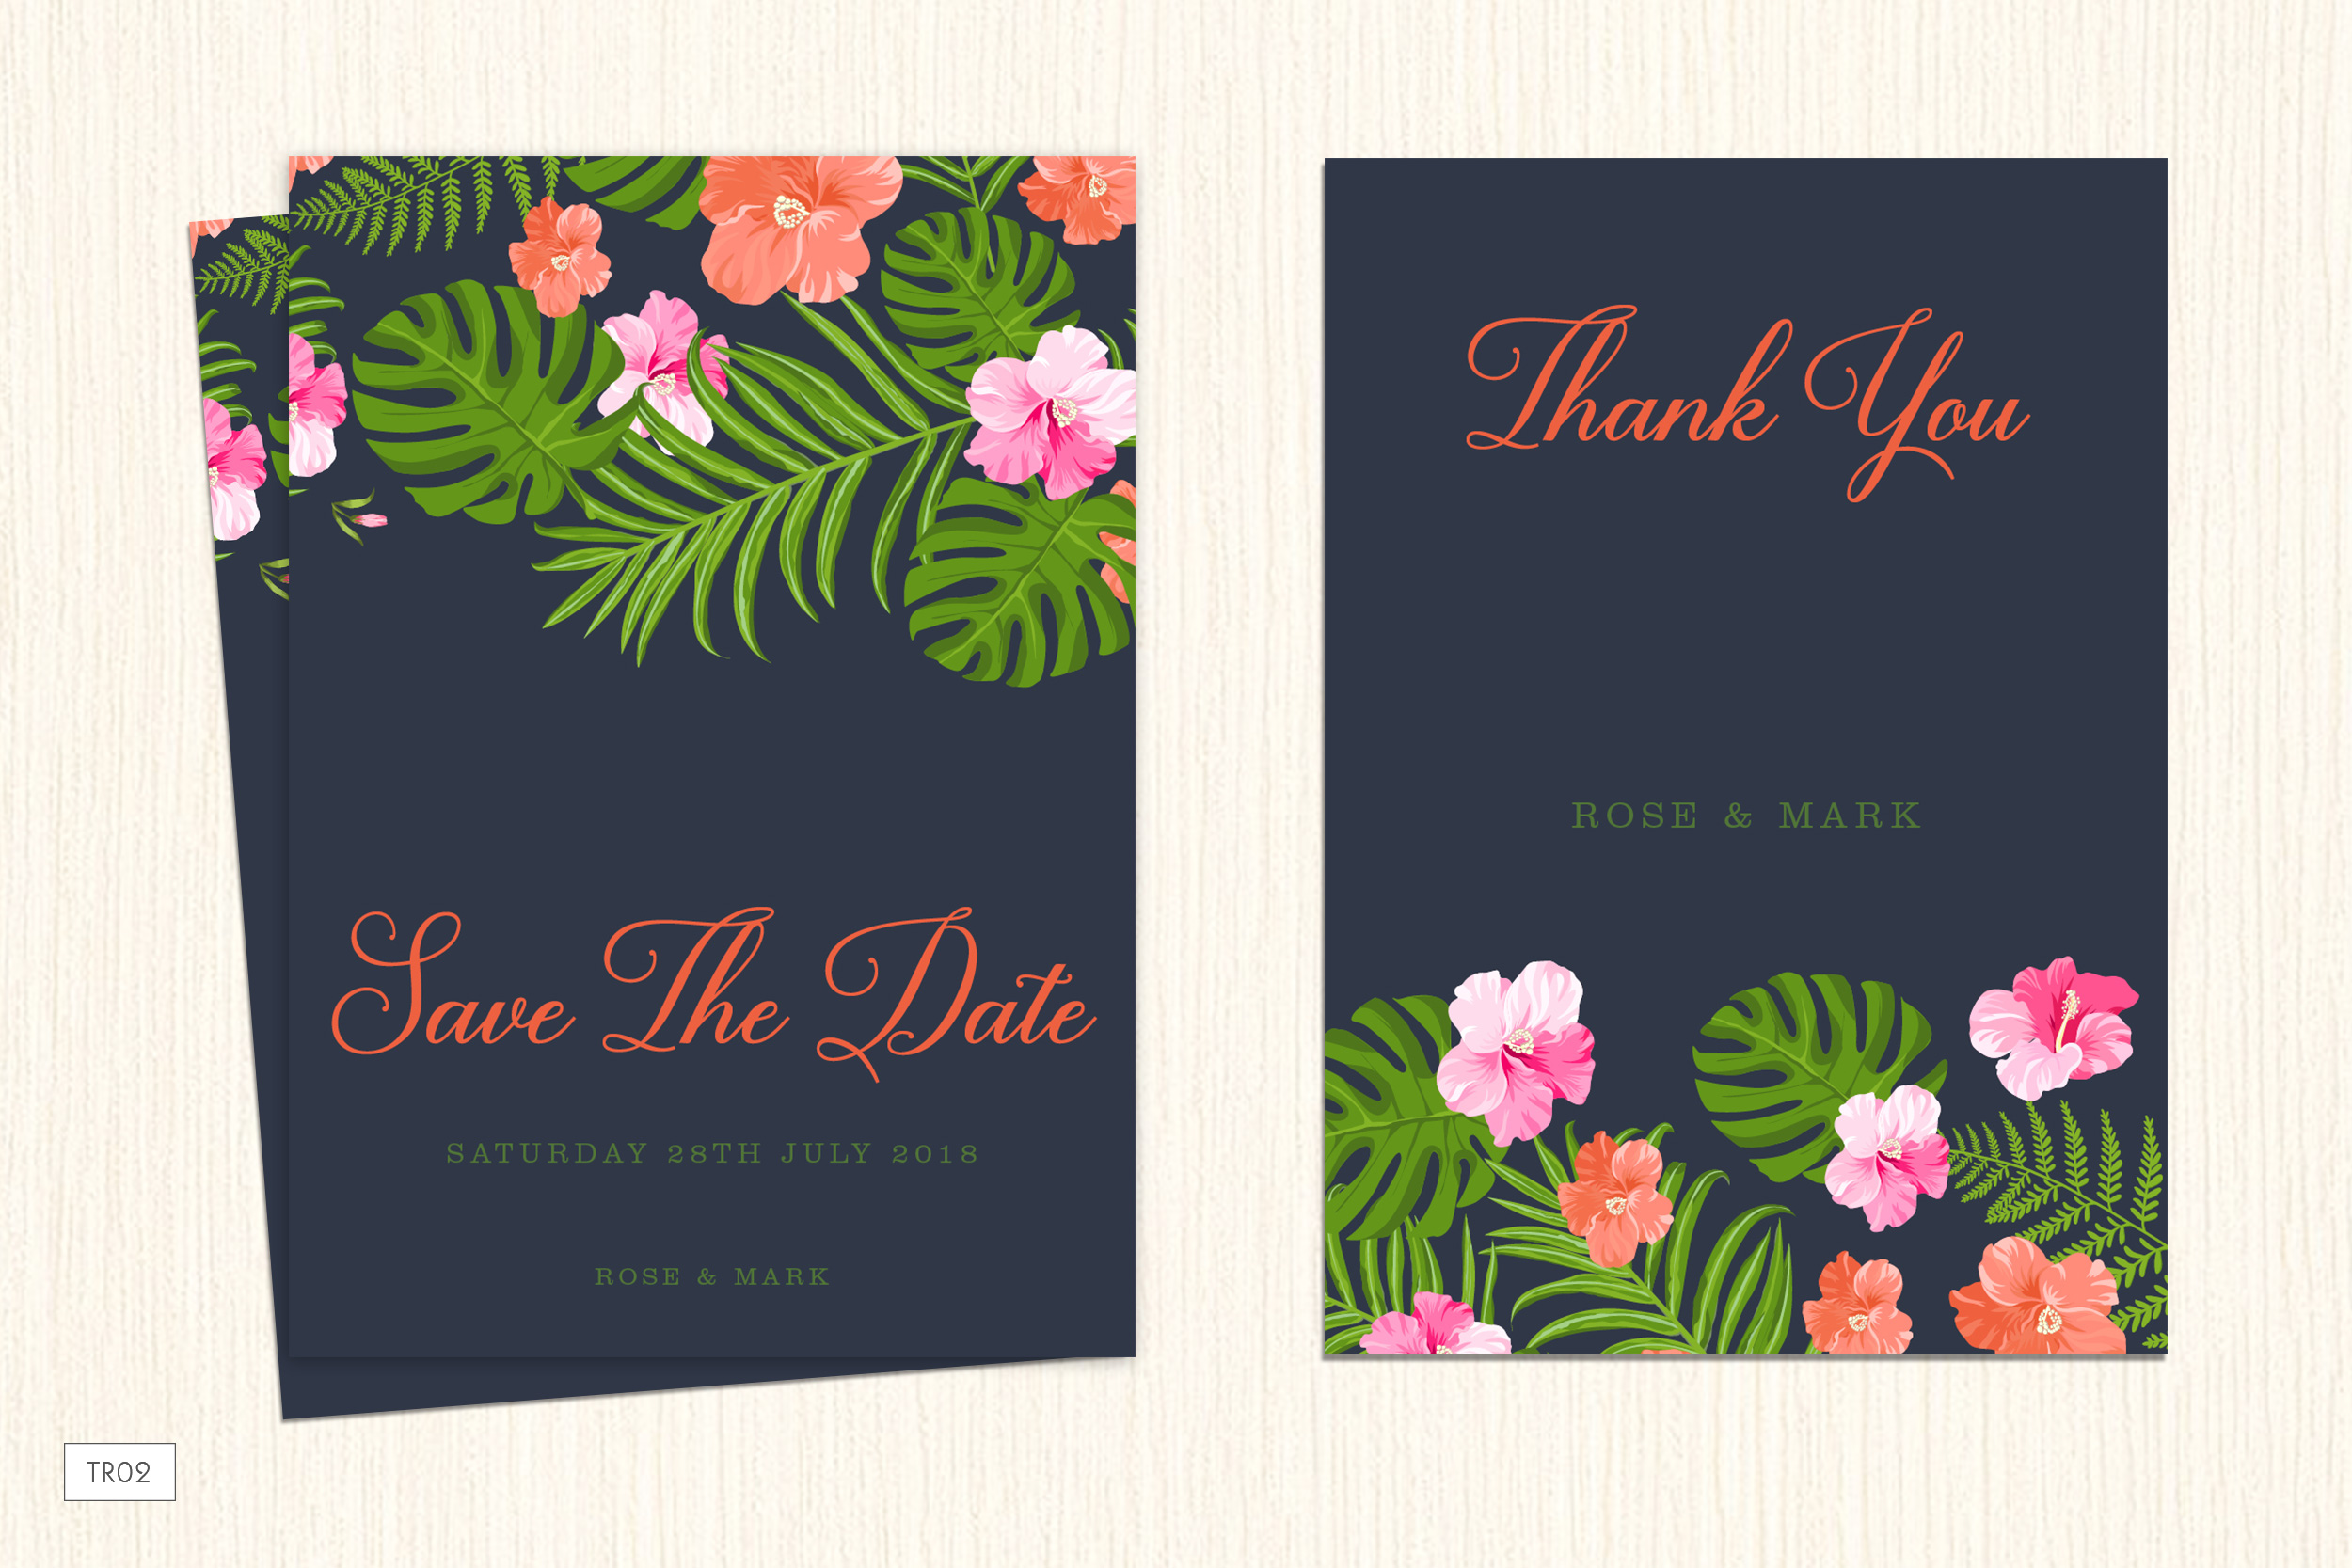 tr02-tropics-save-the-date-thank-you.jpg